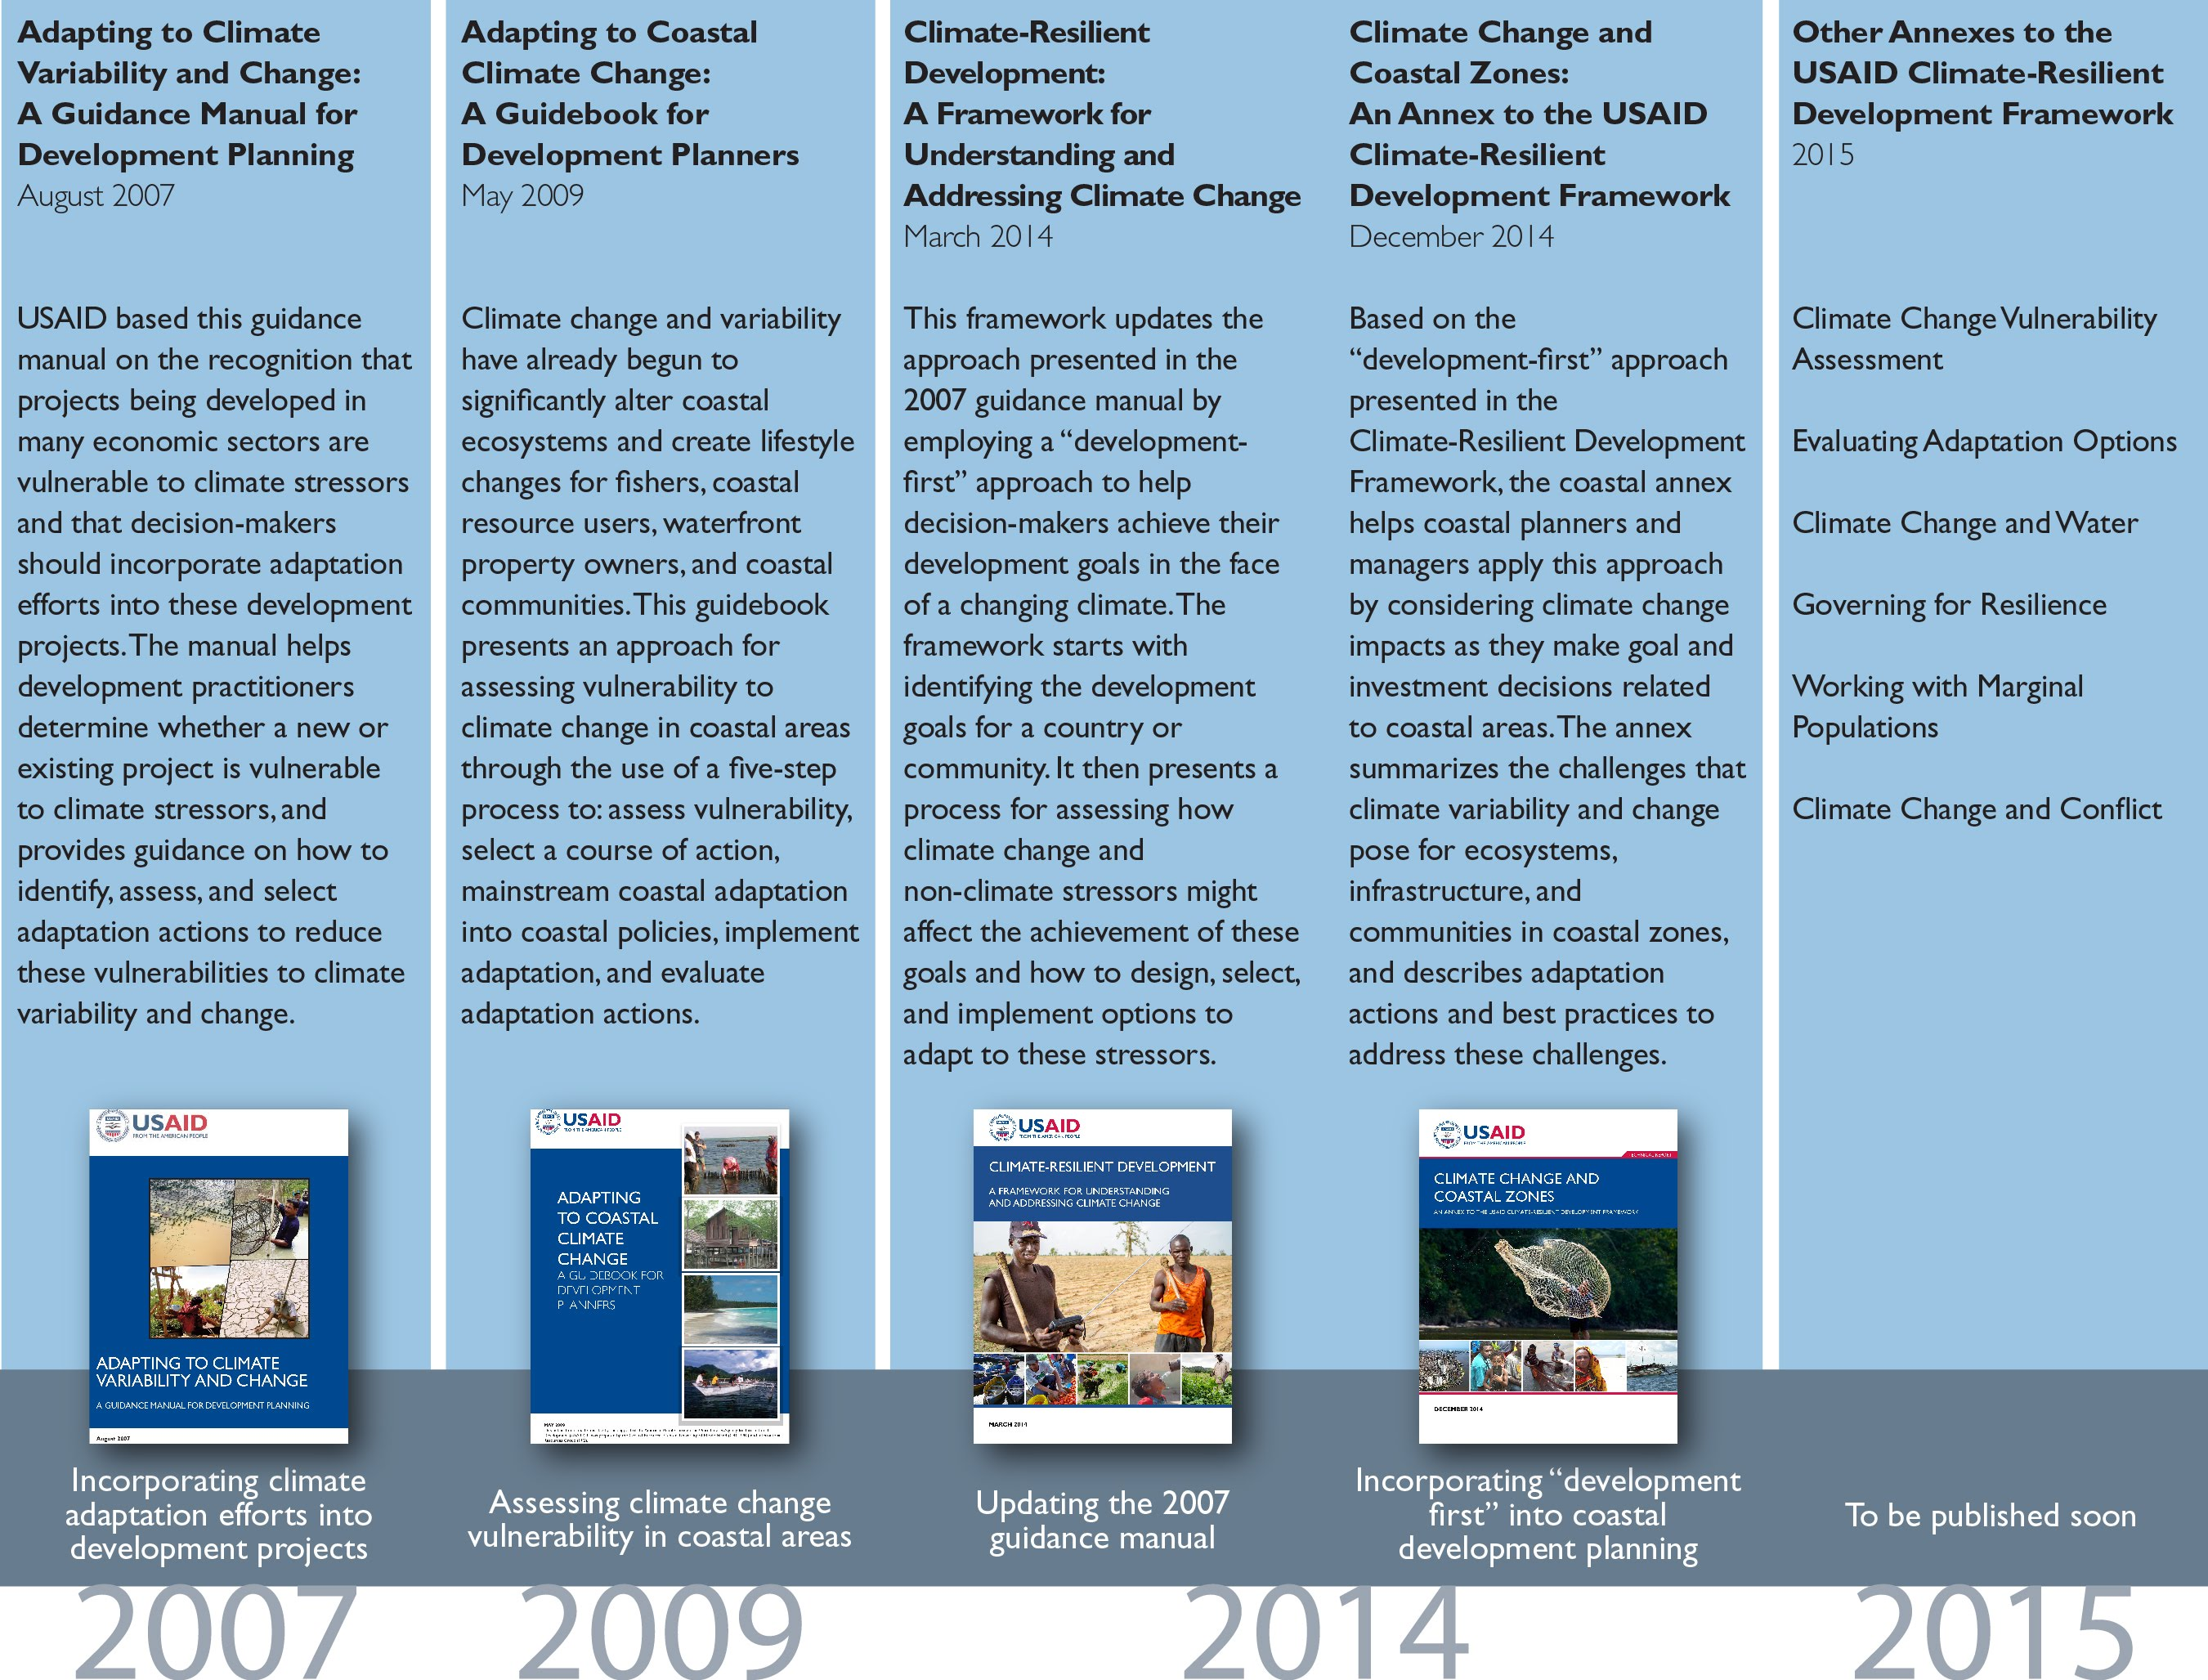 History of Climate Change Adaptation at USAID